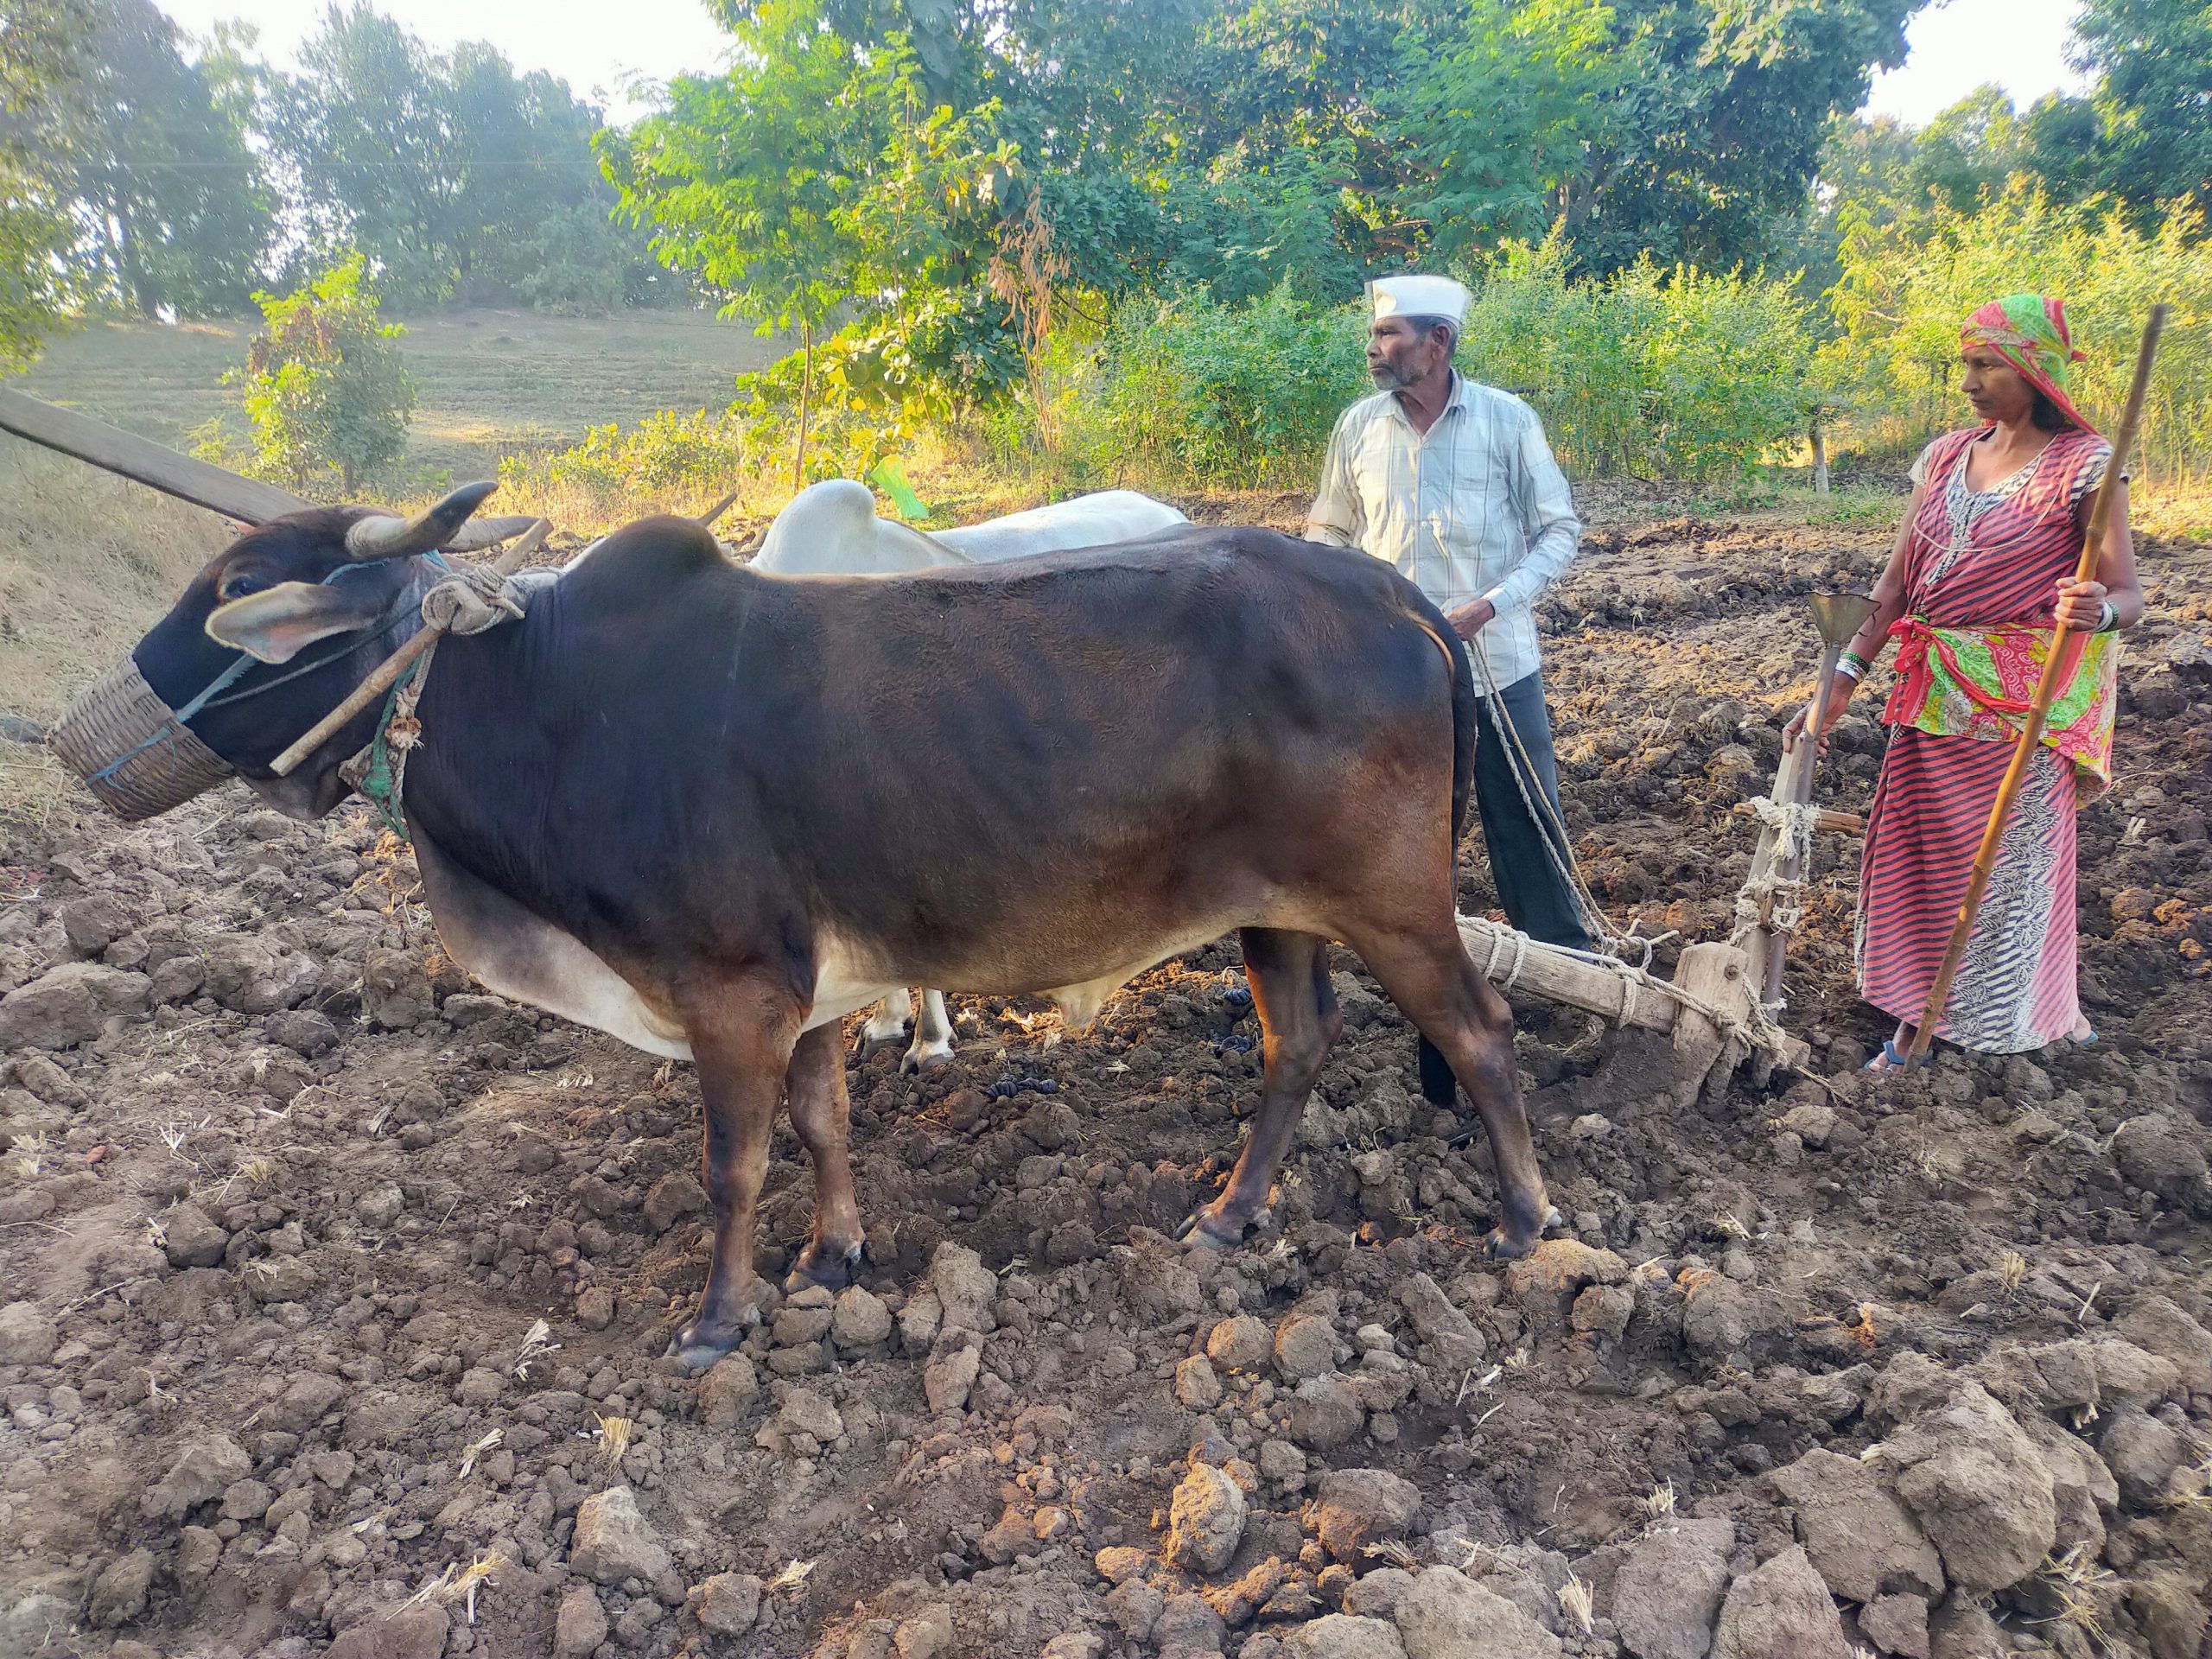 Farmers plough with oxen